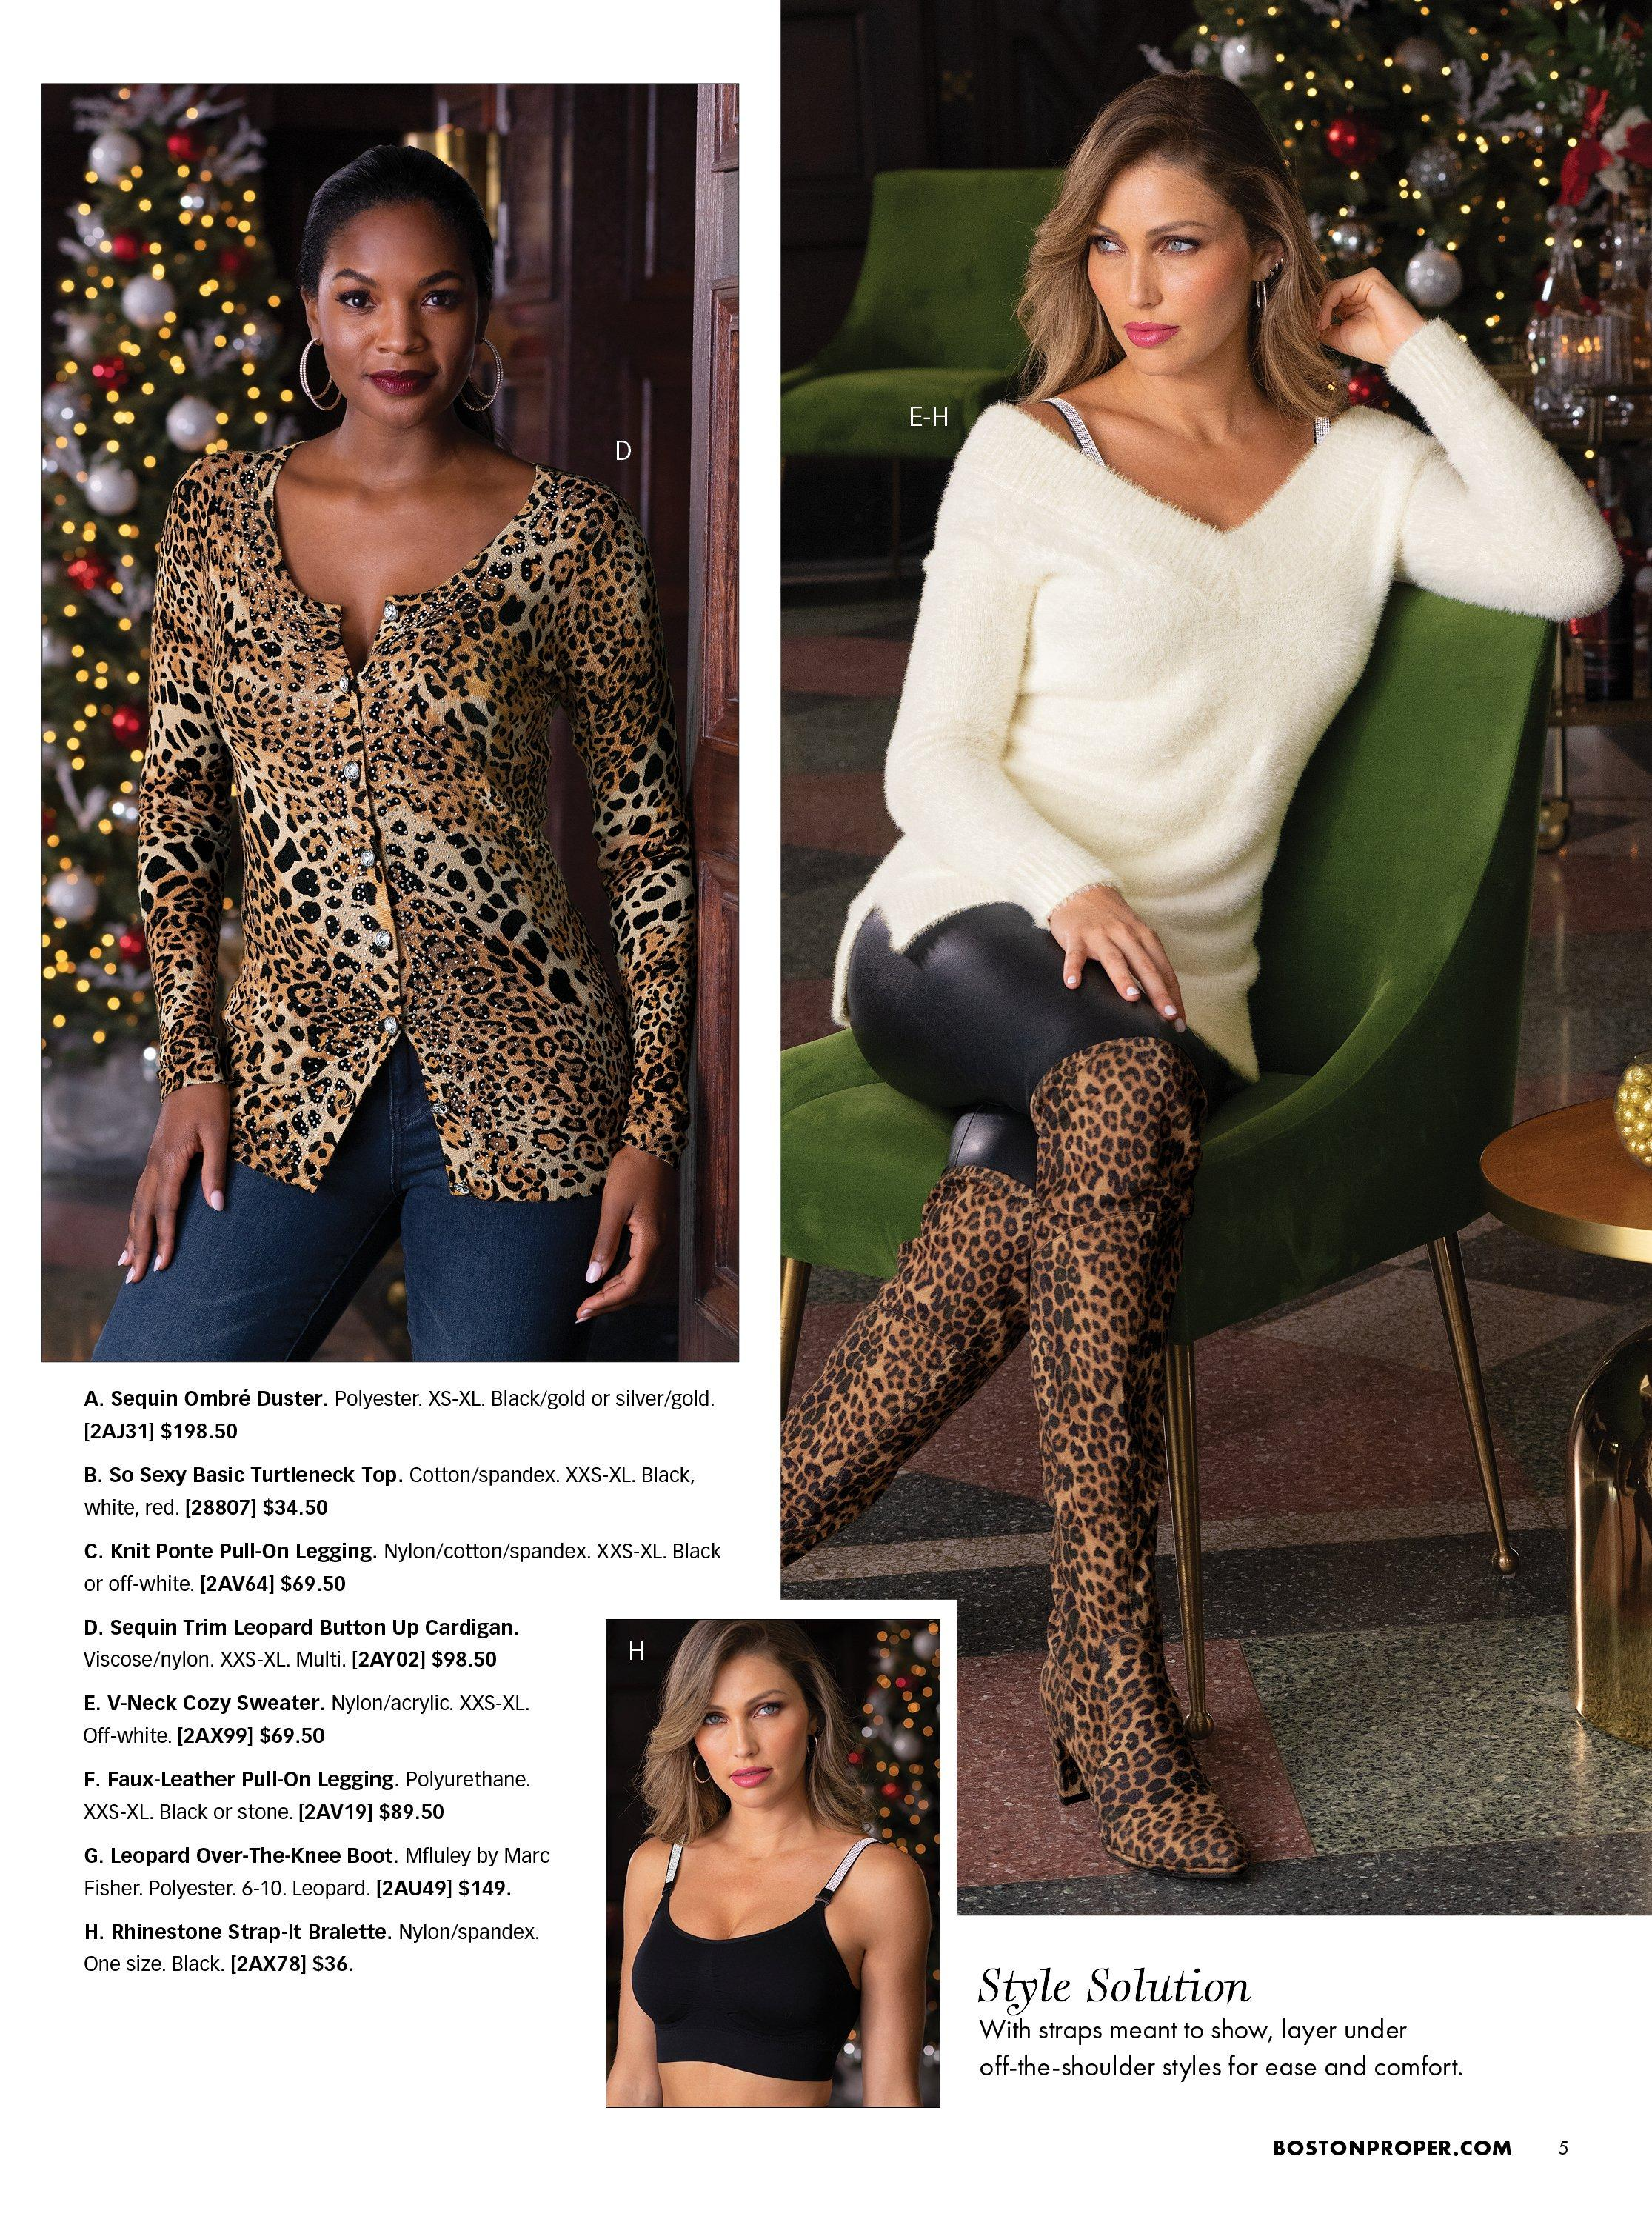 left model wearing an embellished leopard print button up cardigan and jeans. right model wearing a white v-neck sweater, black faux leather leggings, and leopard print over-the-knee boots. bottom model wearing a black bralette with rhinestone embellished straps.